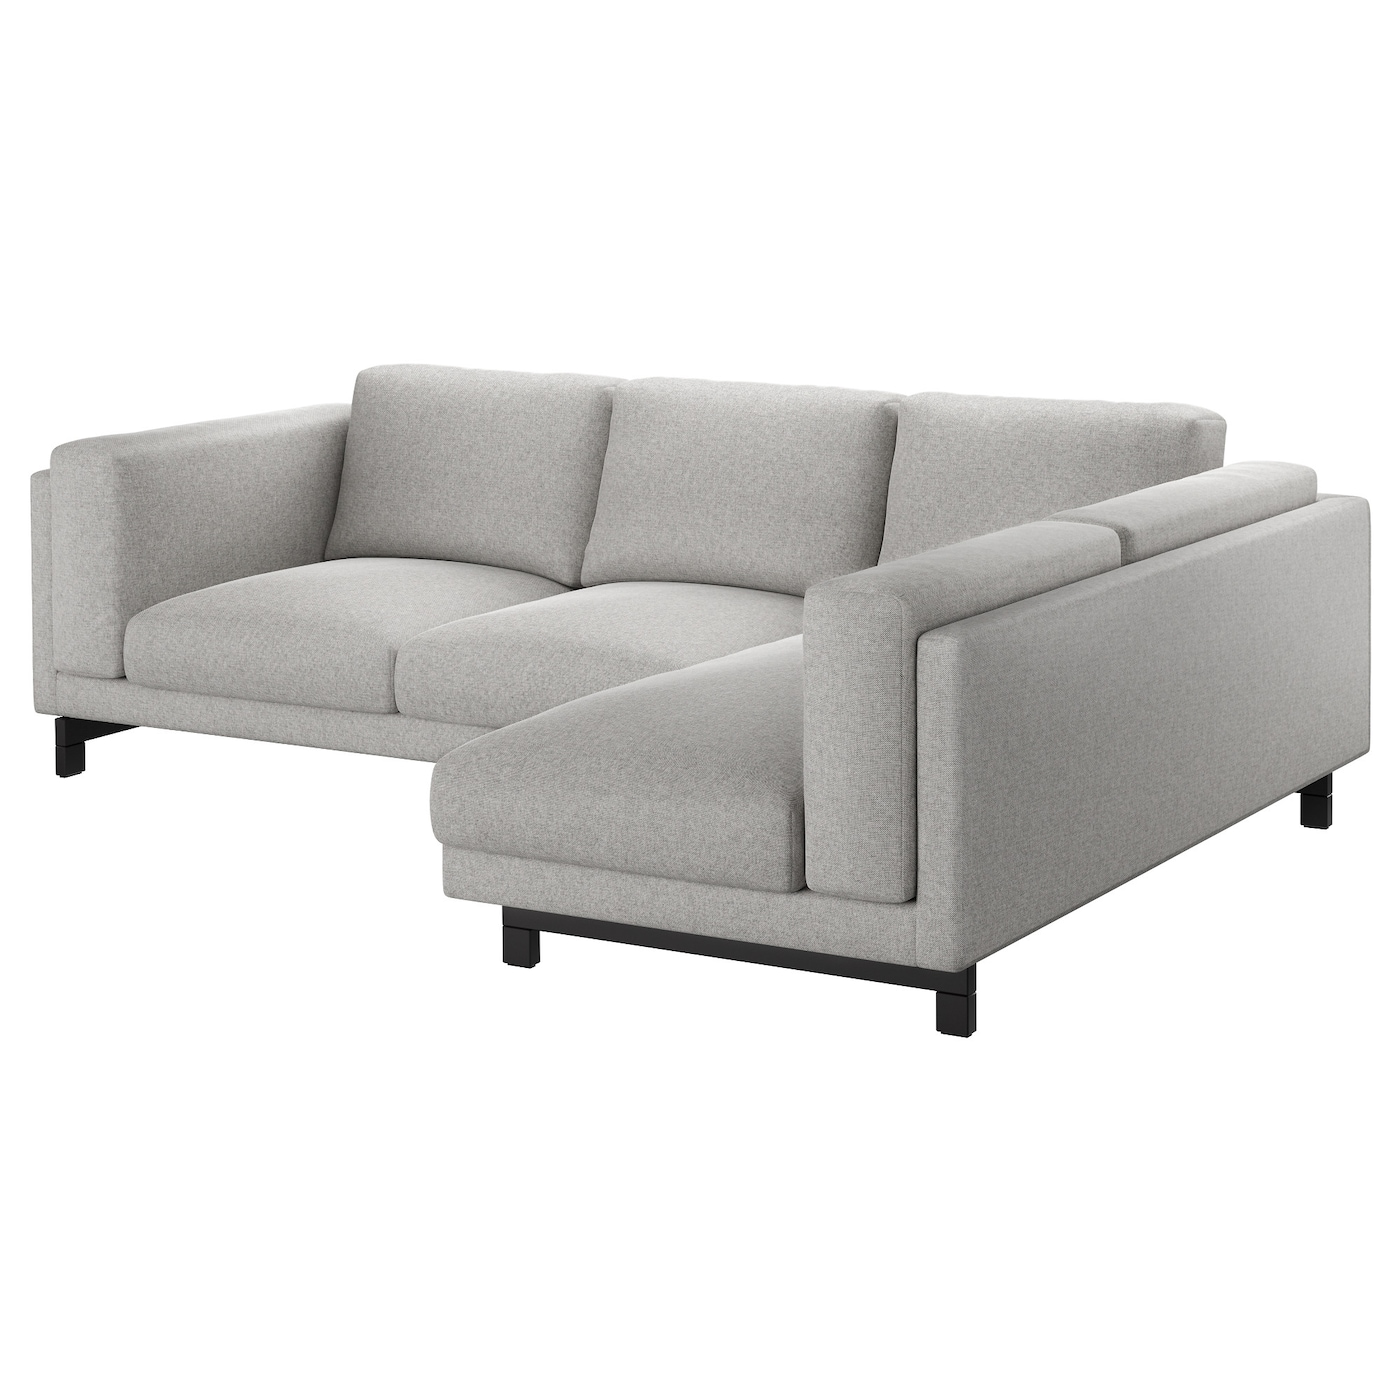 nockeby 3 seat sofa with chaise longue right tallmyra white black wood ikea. Black Bedroom Furniture Sets. Home Design Ideas